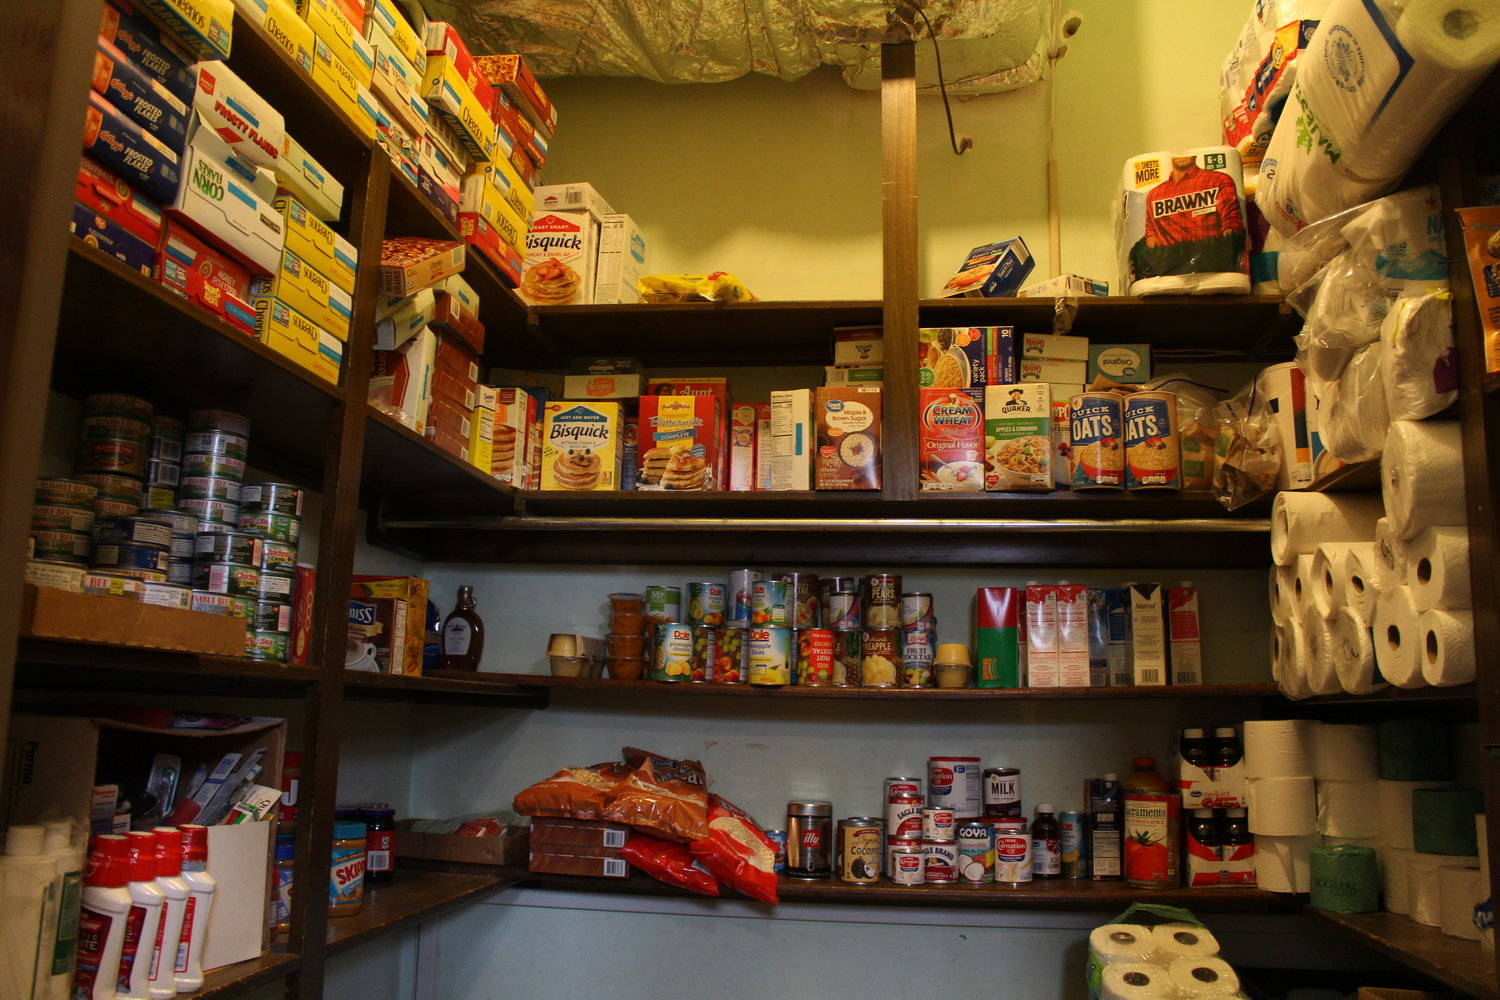 The pantry offers nonperishable food items as well as clothes, shoes, toiletries and other items.